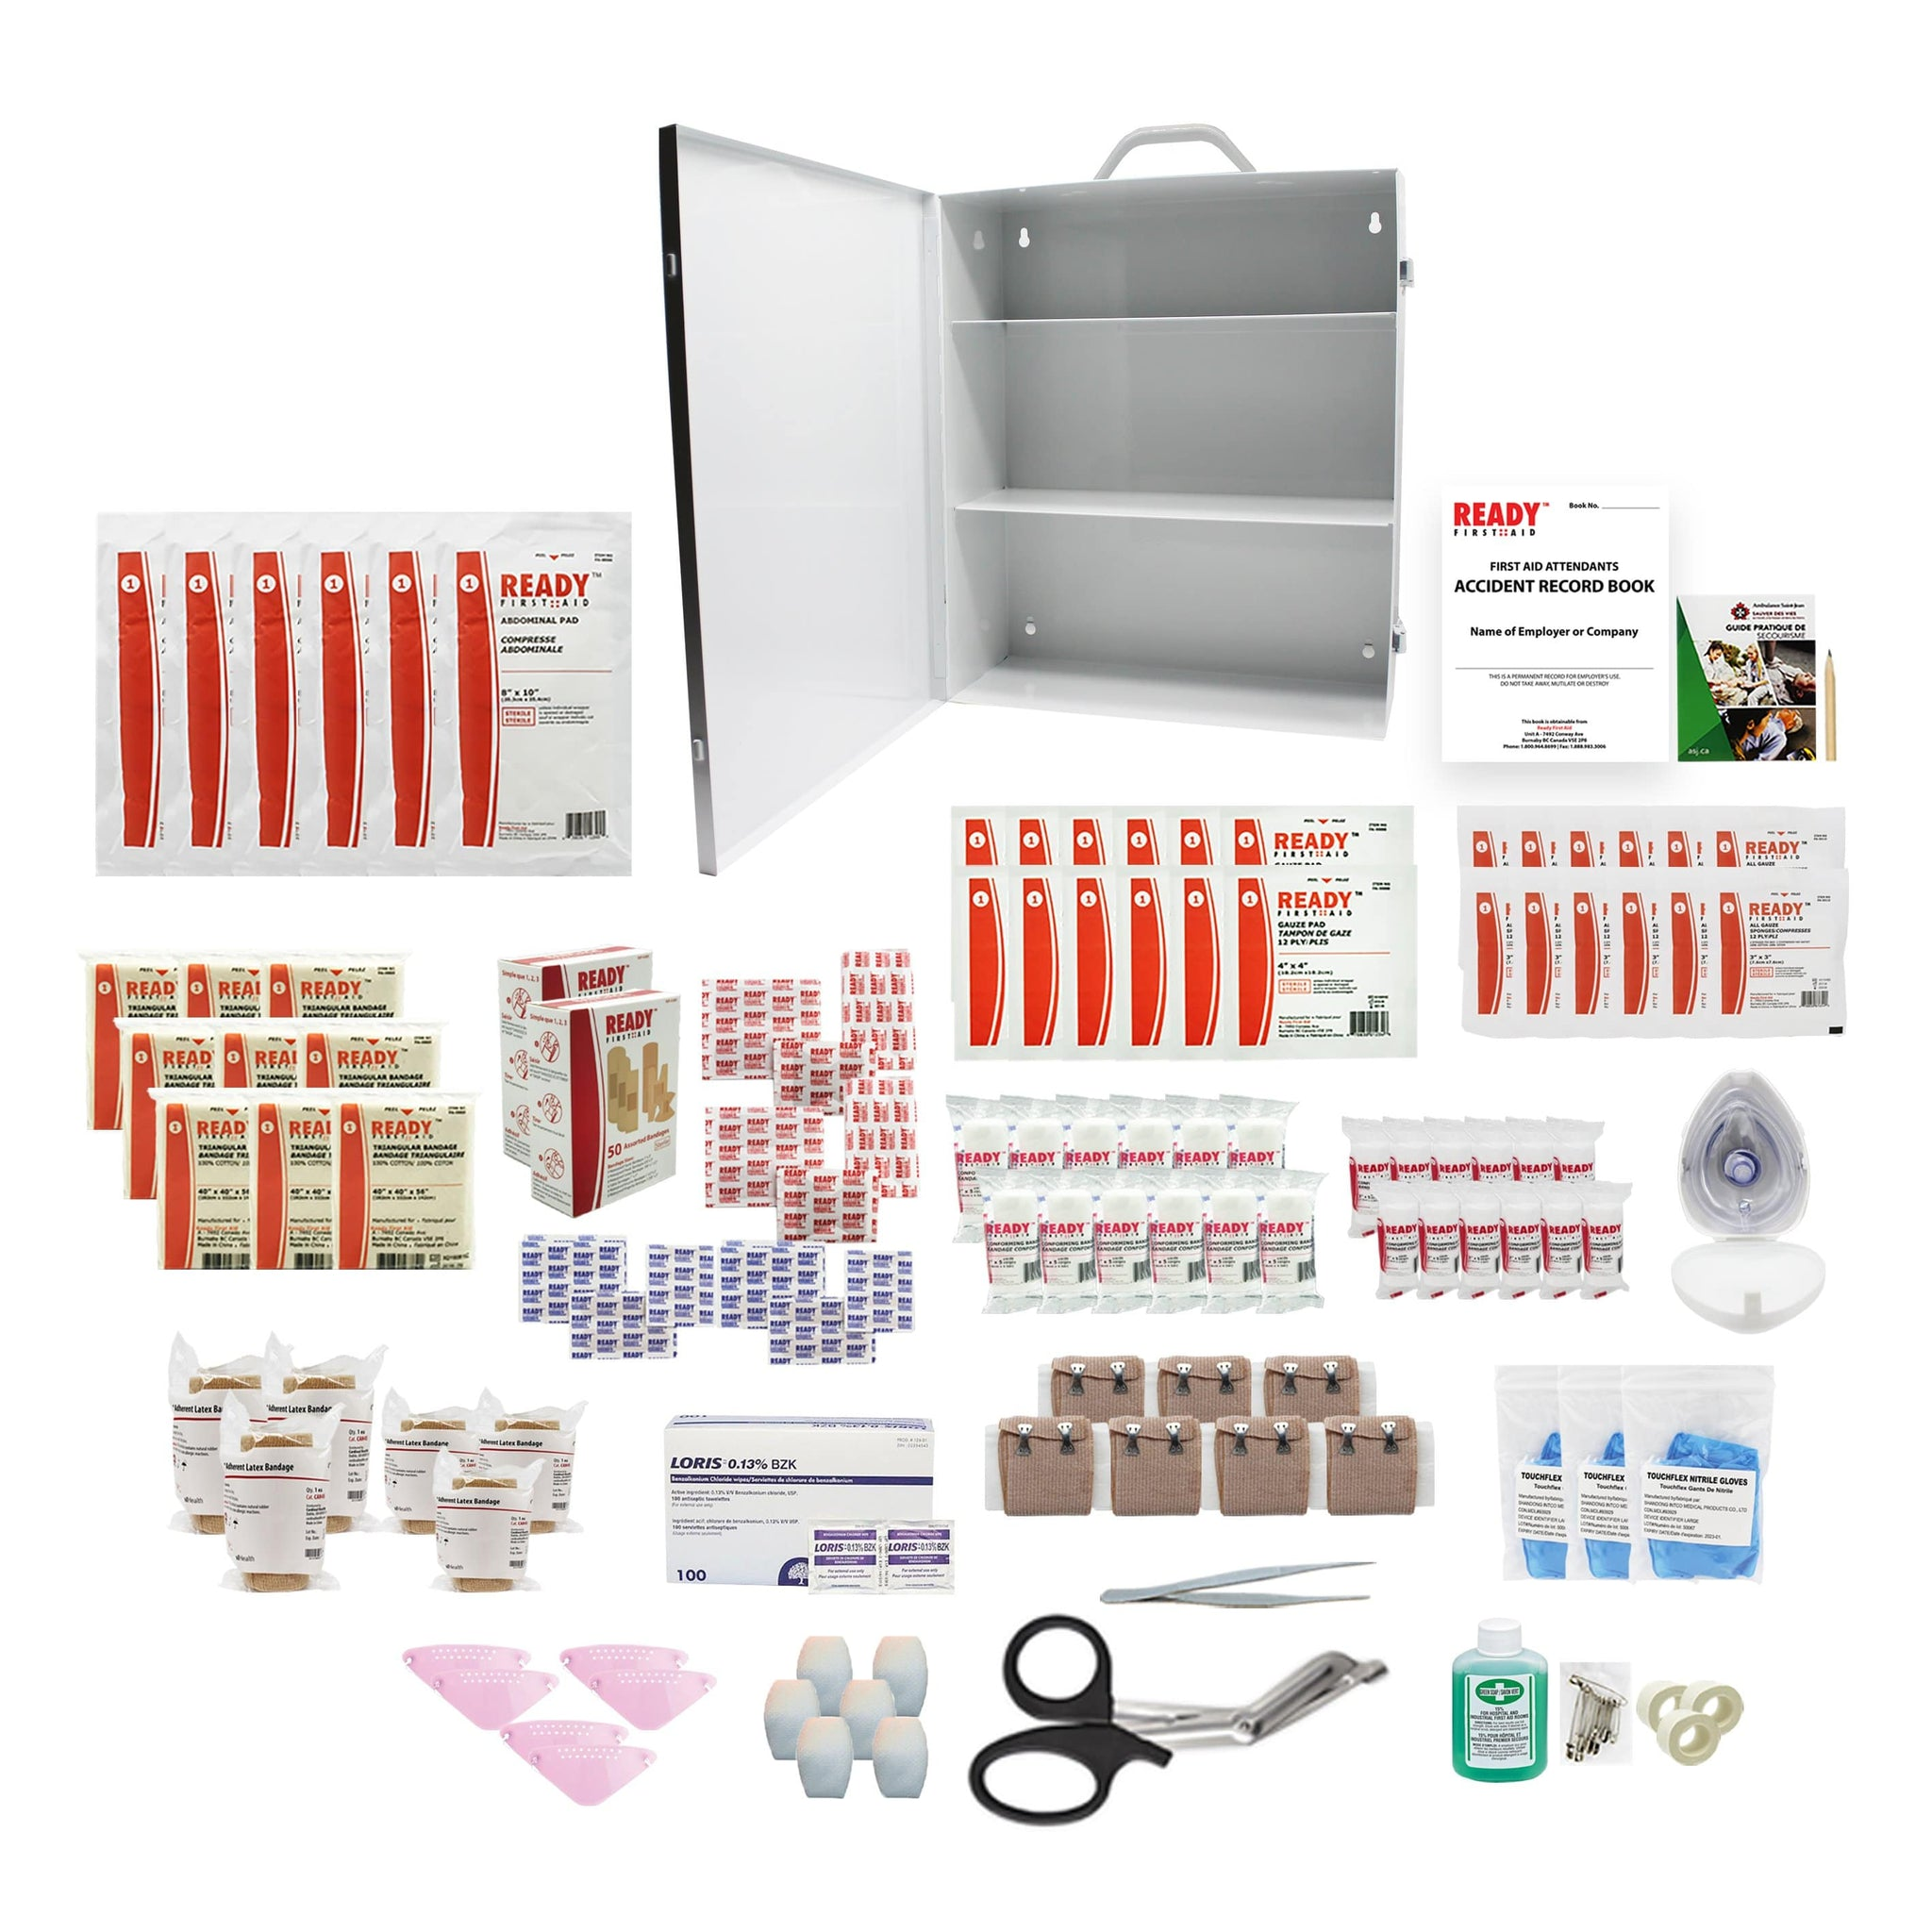 Saskatchewan 40+ Employees First Aid Kit Min. Requirements Metal Cabinet